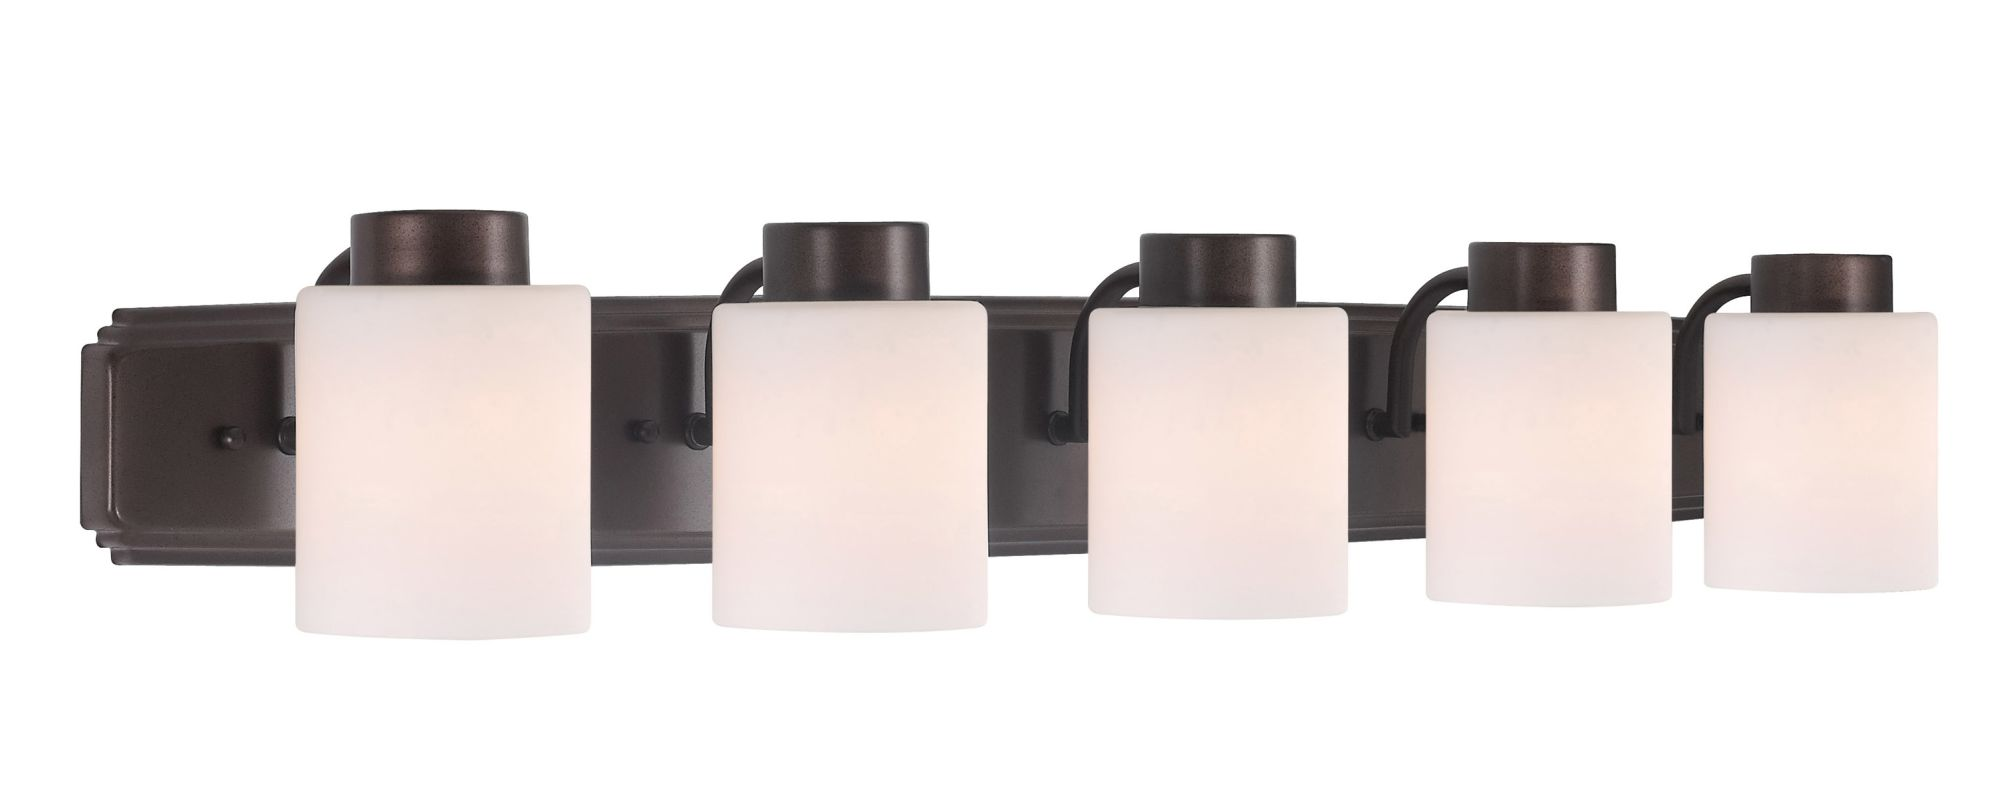 Innovative Exterior Wall Mounted Lighting Mounting Height  Google Search  BDCS